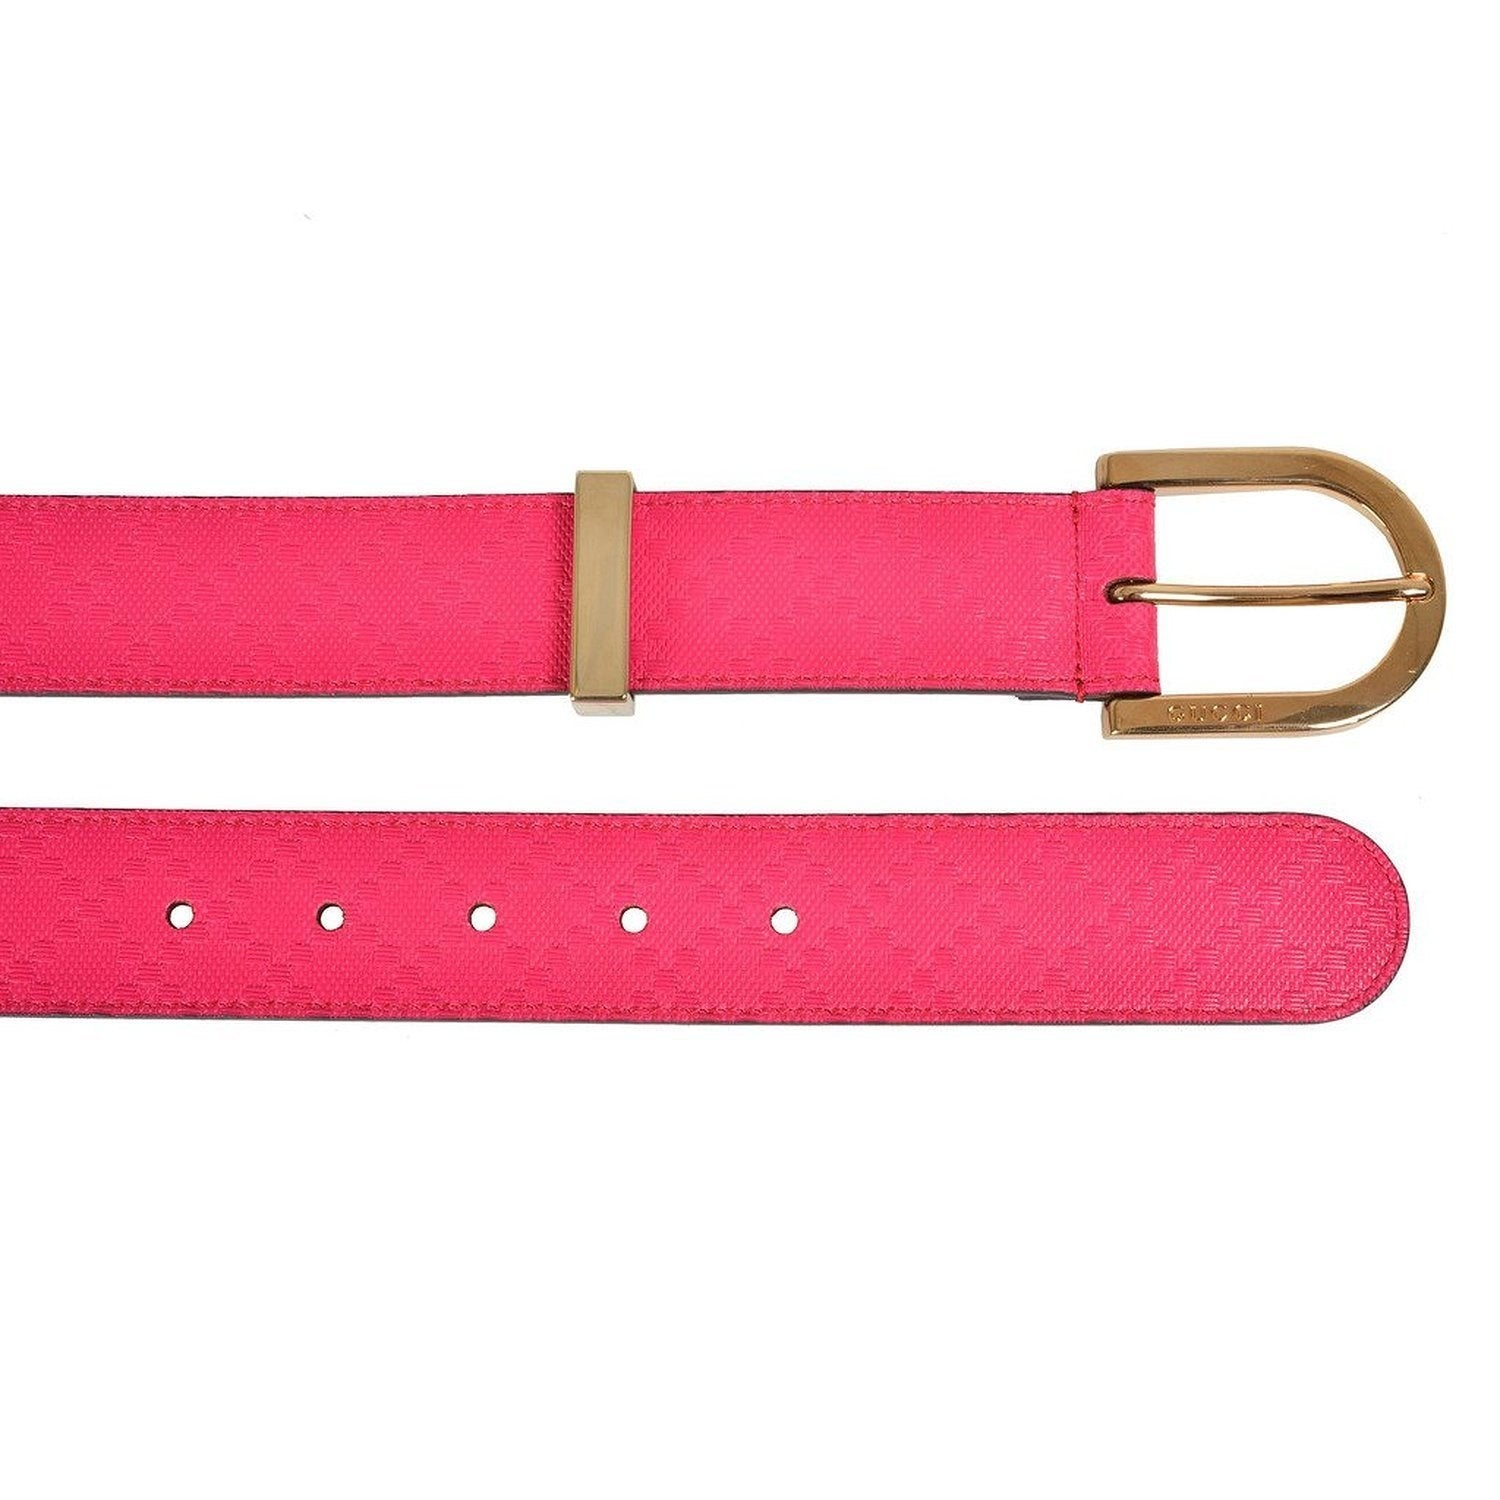 52e8ffa5b8548 Shop Gucci Women s Diamante Pink Leather Belt 354382 - Free Shipping Today  - Overstock - 25724059